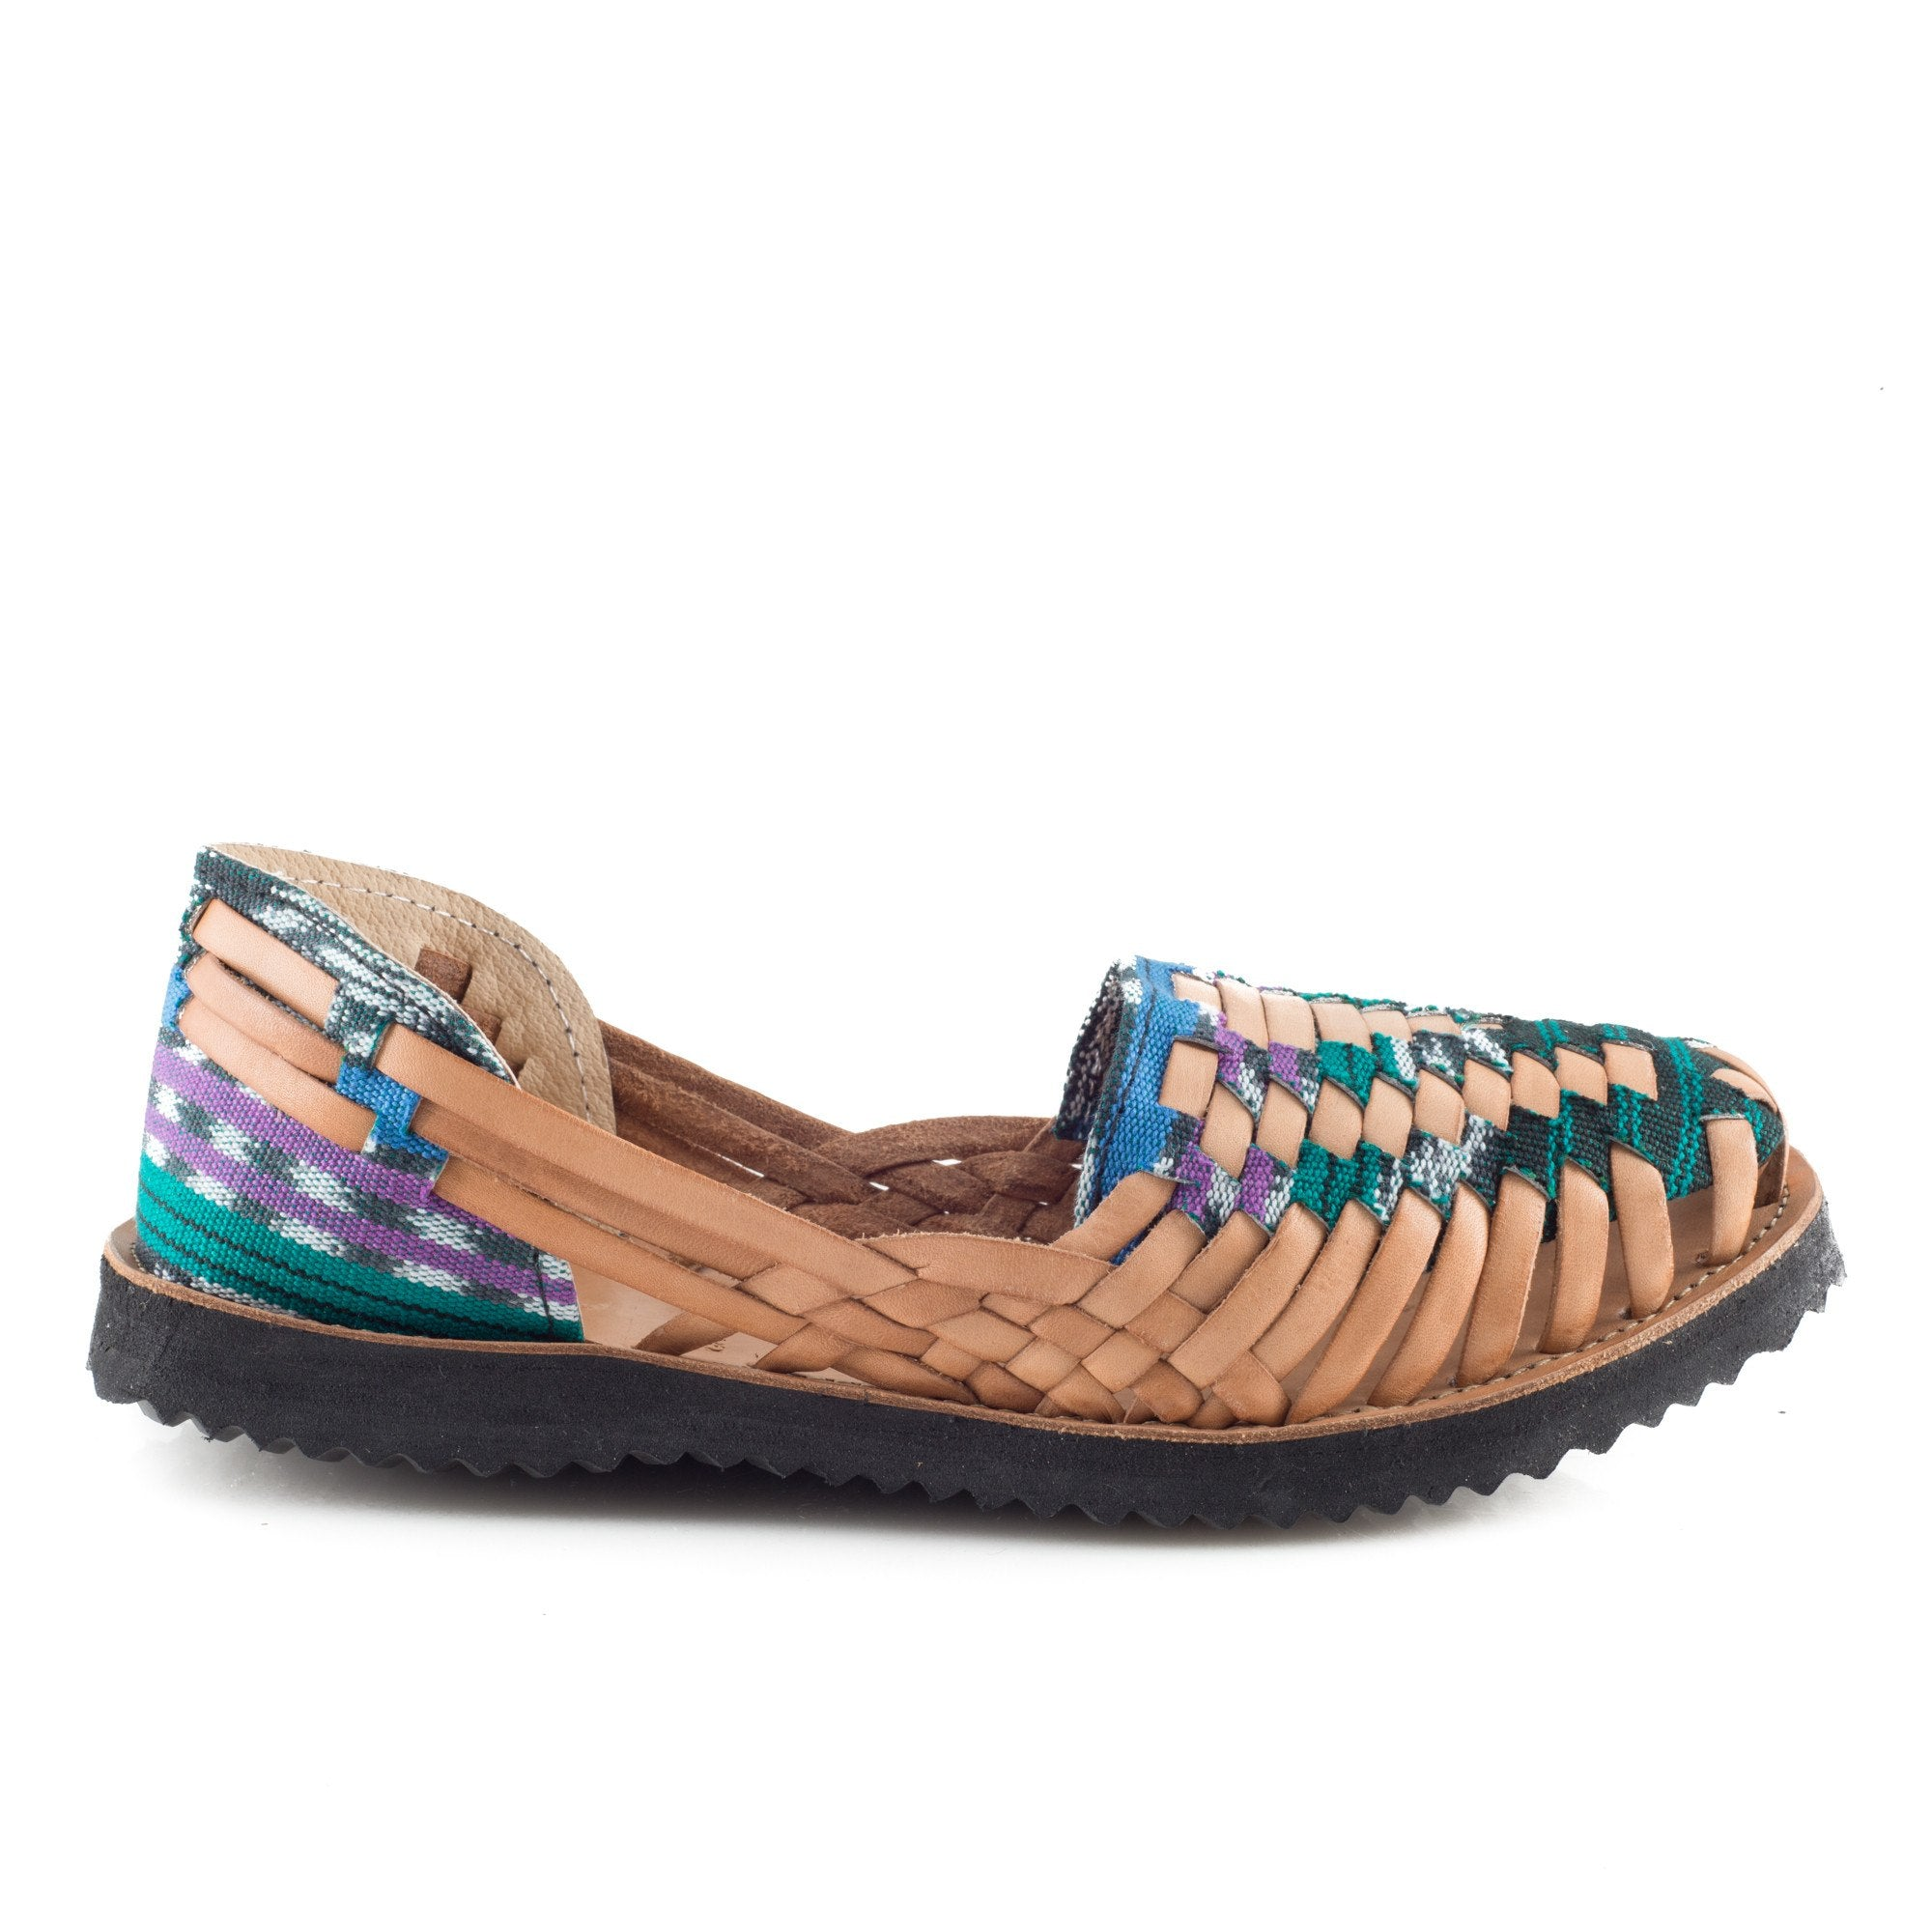 Multi-Colored Green Woven Leather Huarache Sandals - Ix Style - Water For Children